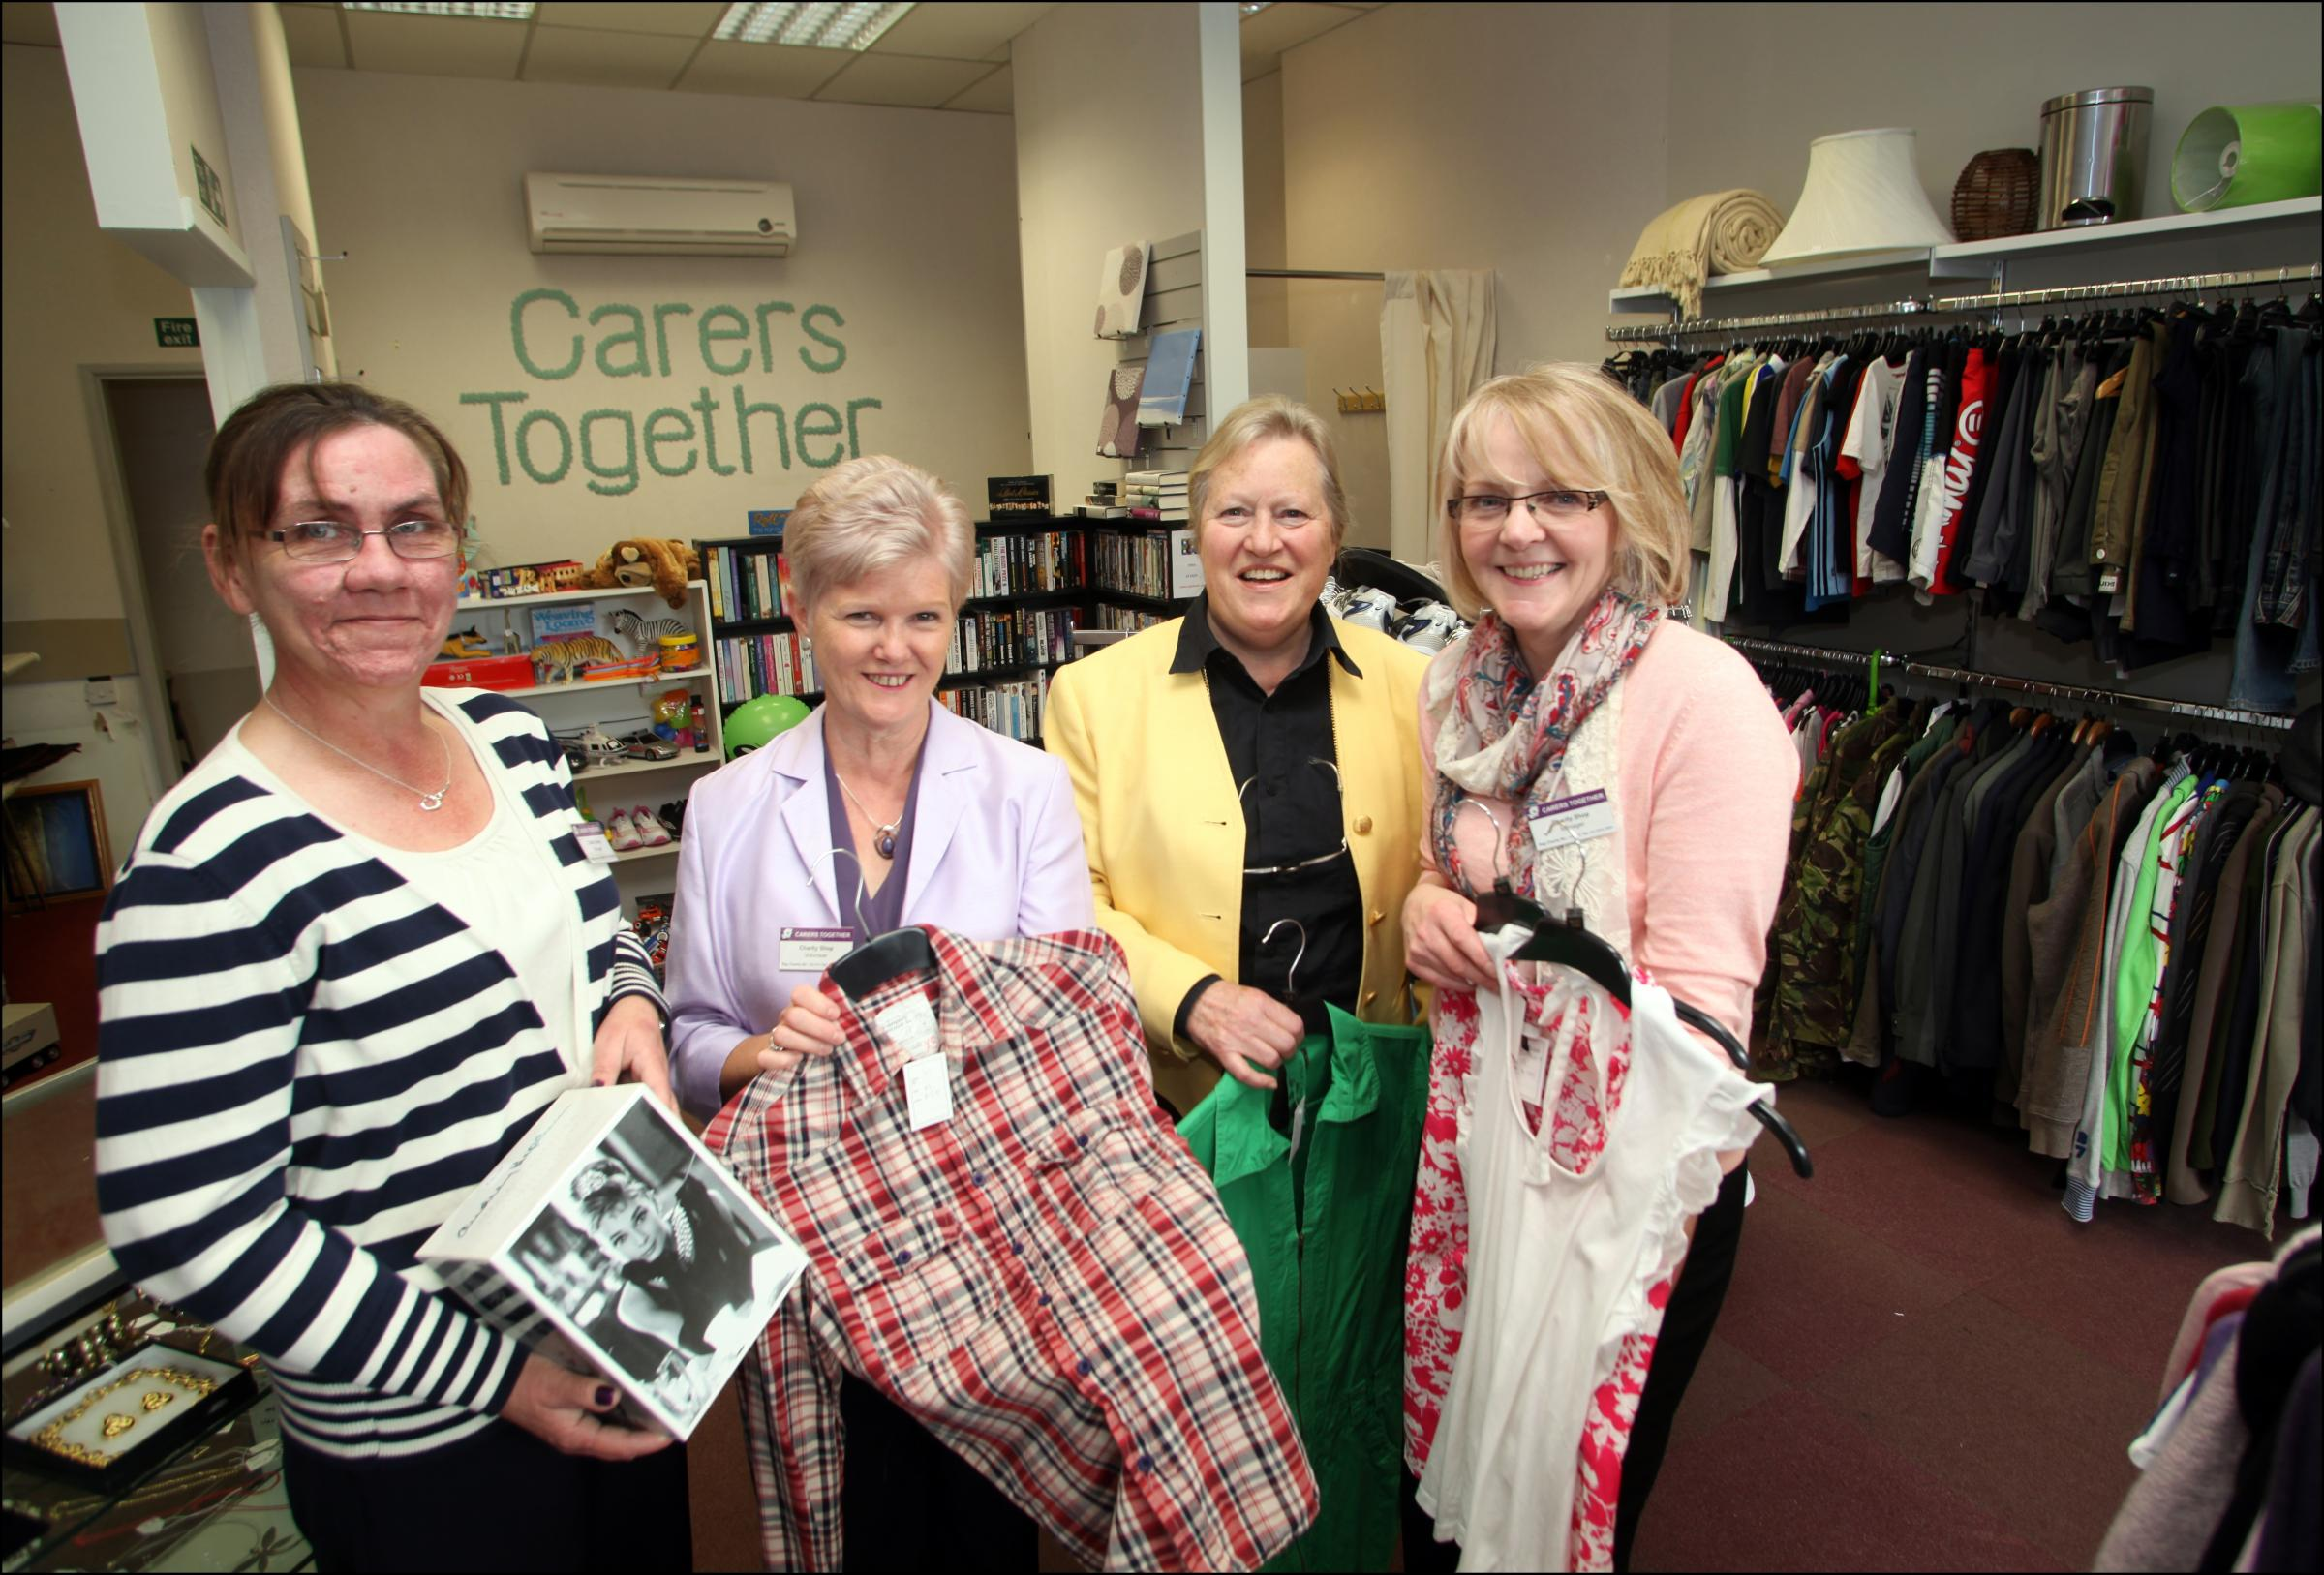 From left: Relief manager Carol Guthrie, volunteer Janet Blann, Patricia Bates and manager Caroline Wilkinson